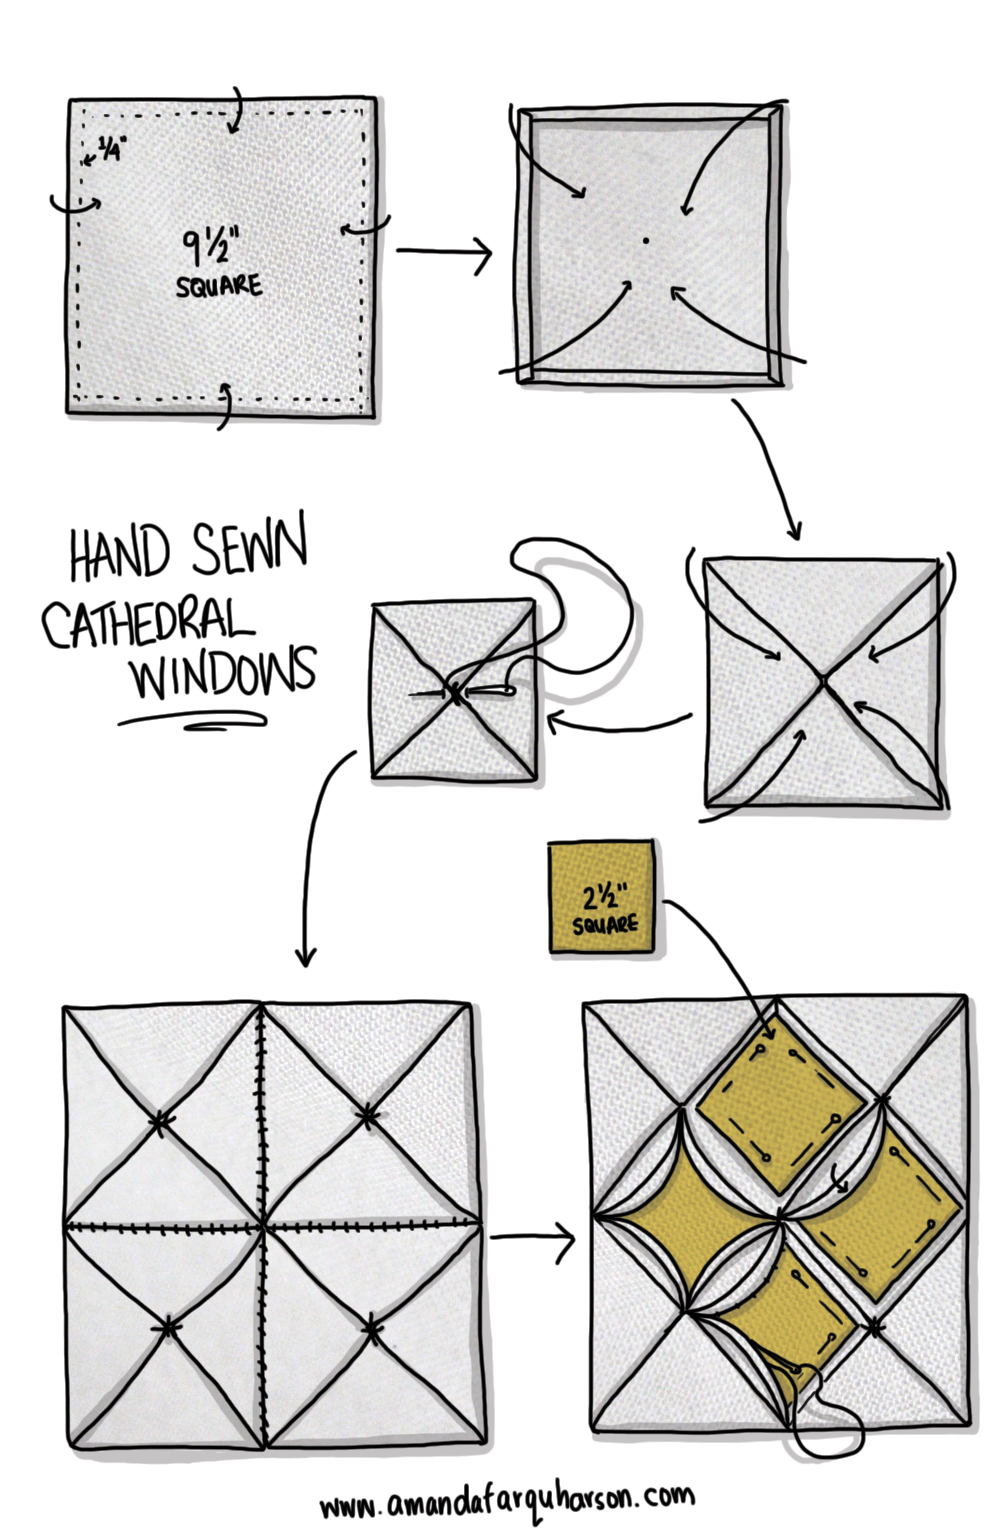 Hand Sewn Cathedral Windows Tutorial Amanda Farquharson